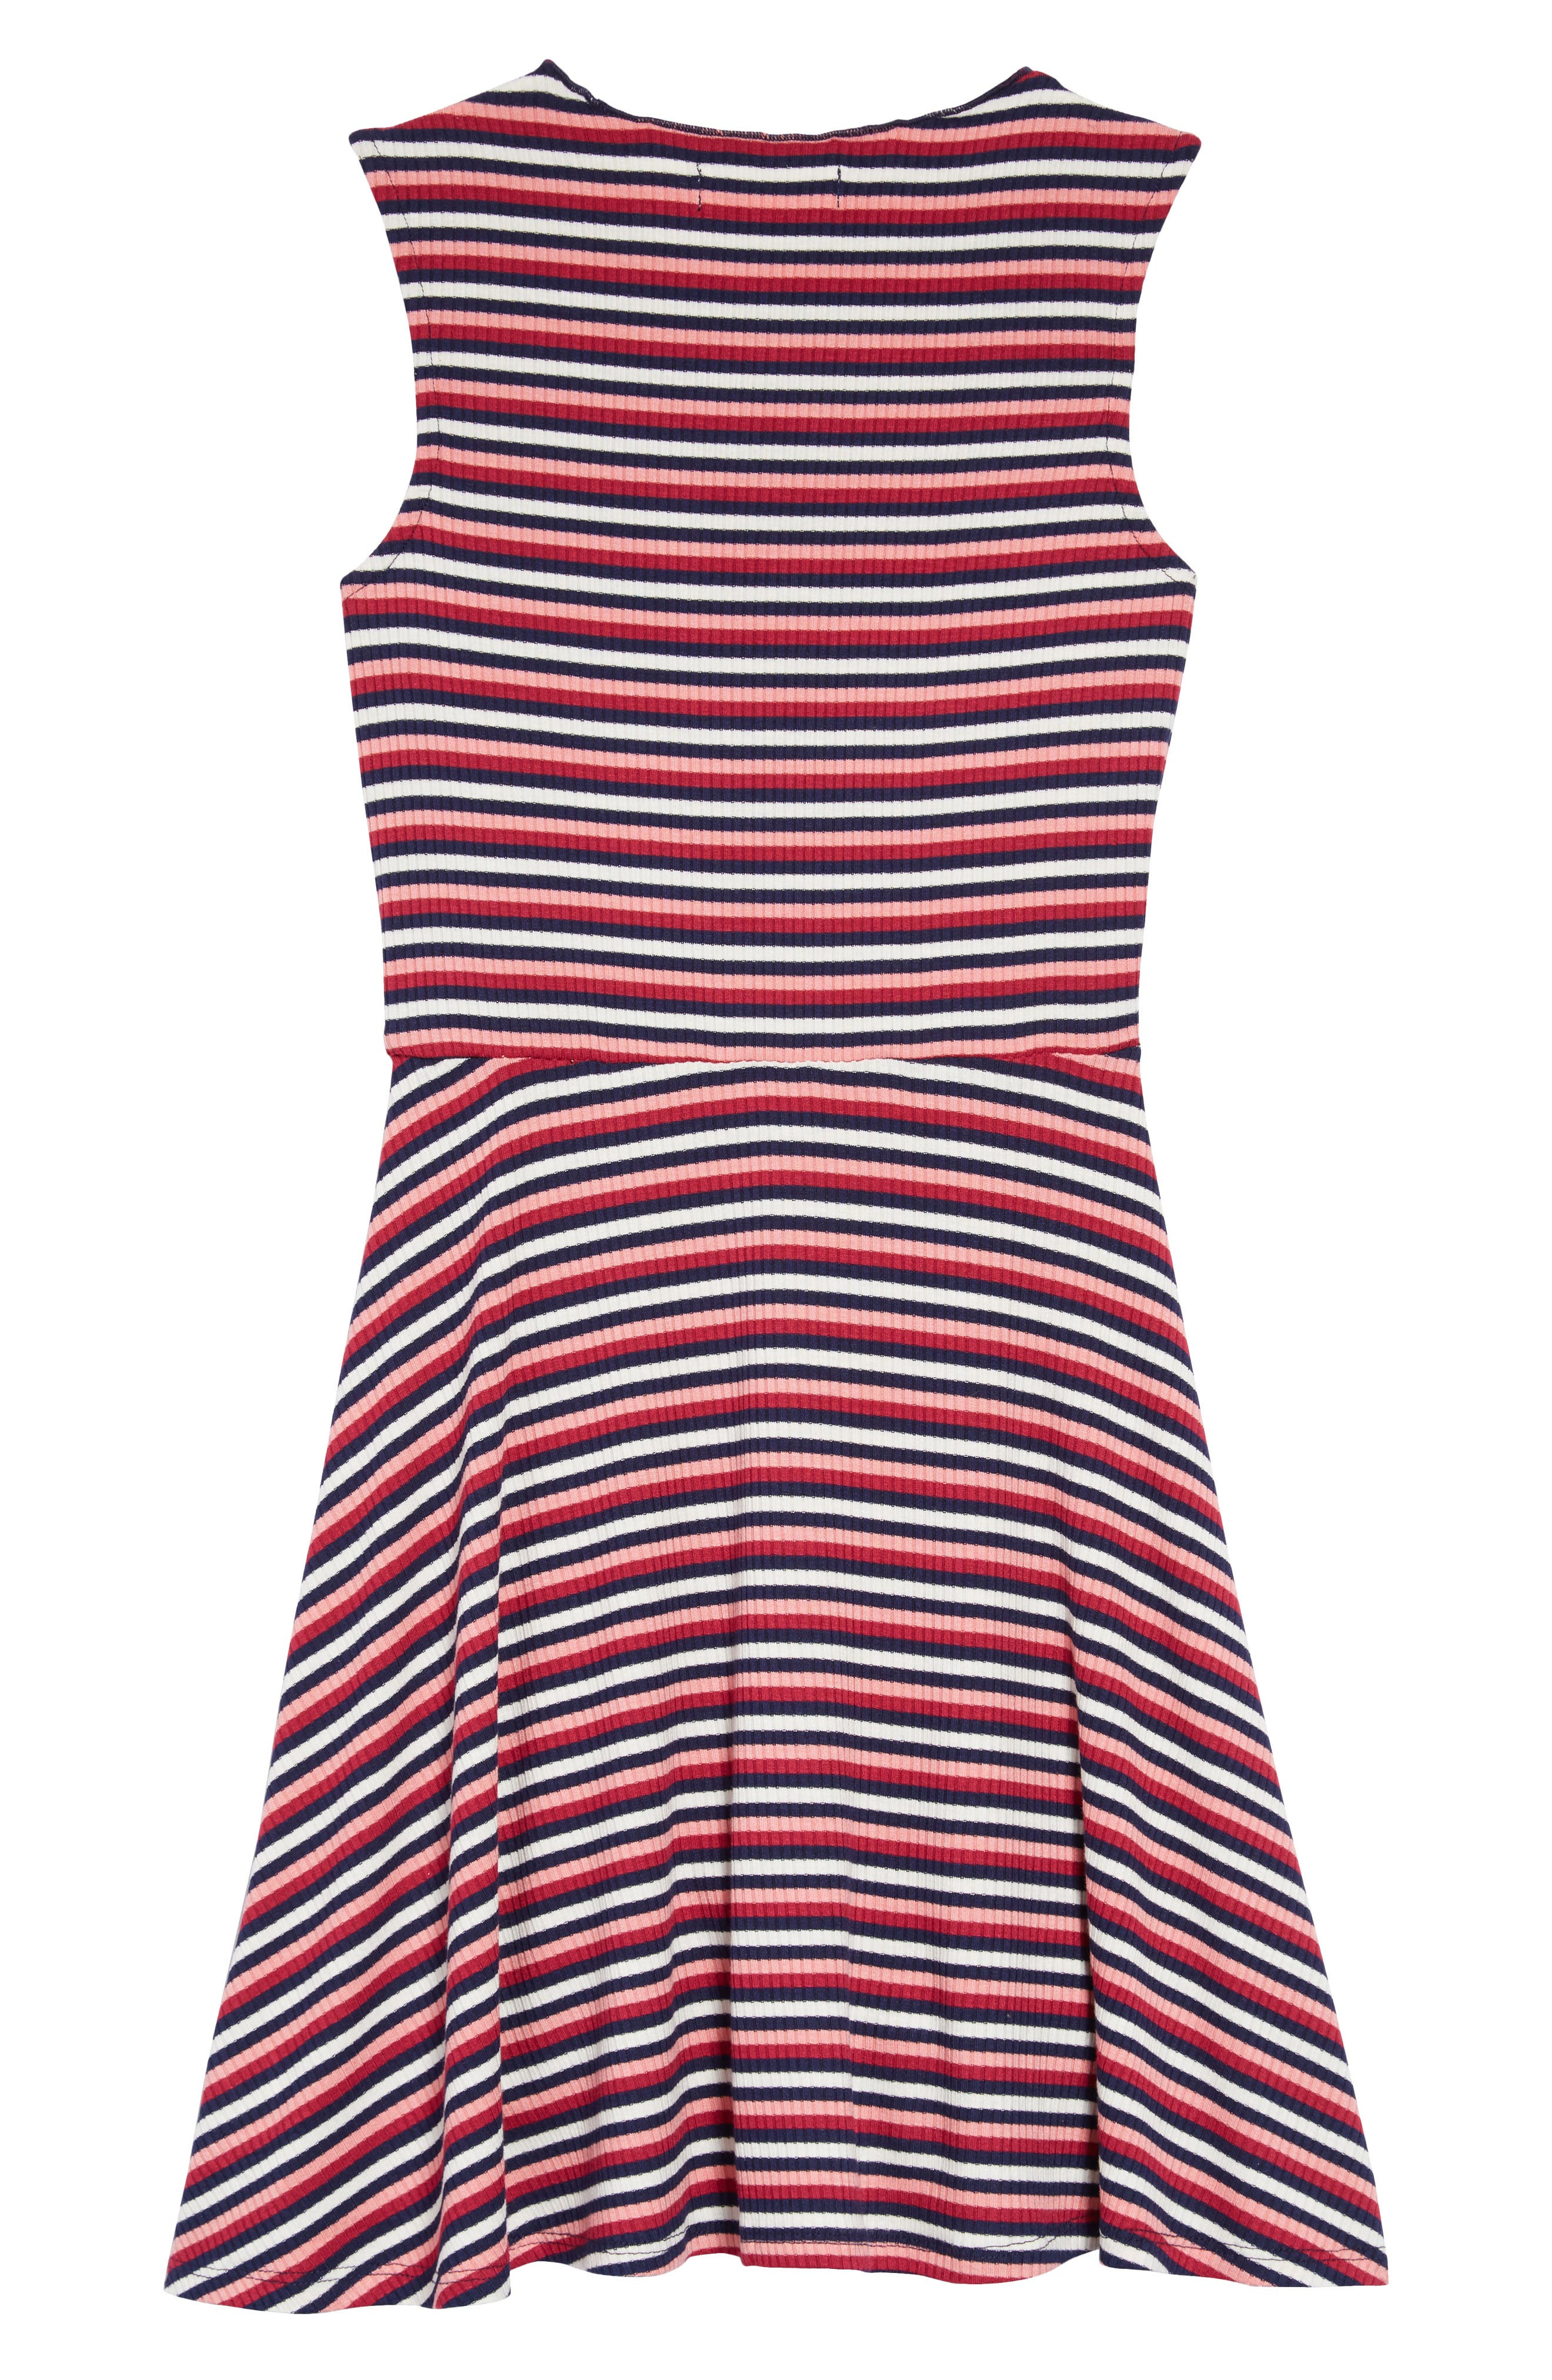 TEN SIXTY SHERMAN,                             Stripe Dress,                             Alternate thumbnail 2, color,                             WHITE RASPBERRY